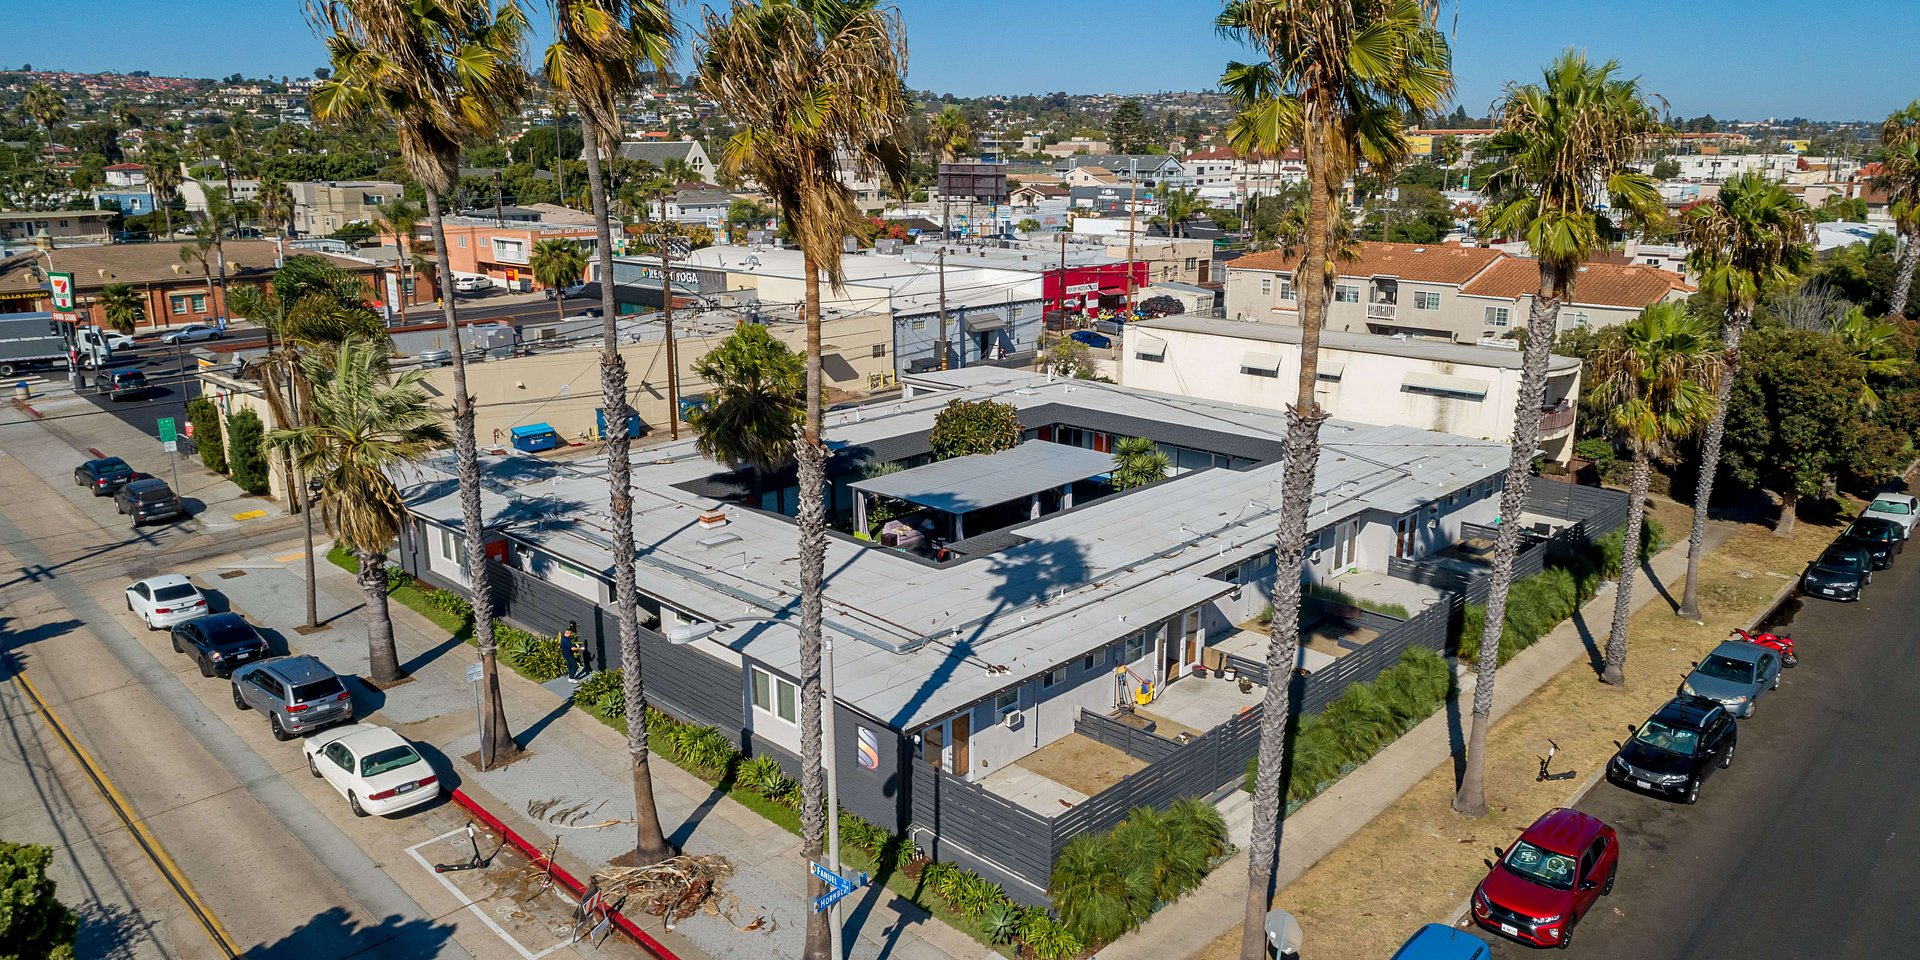 Coldwell Banker Commercial NRT Lists 17-Unit Apartment Complex in San Diego for $7.995 Million